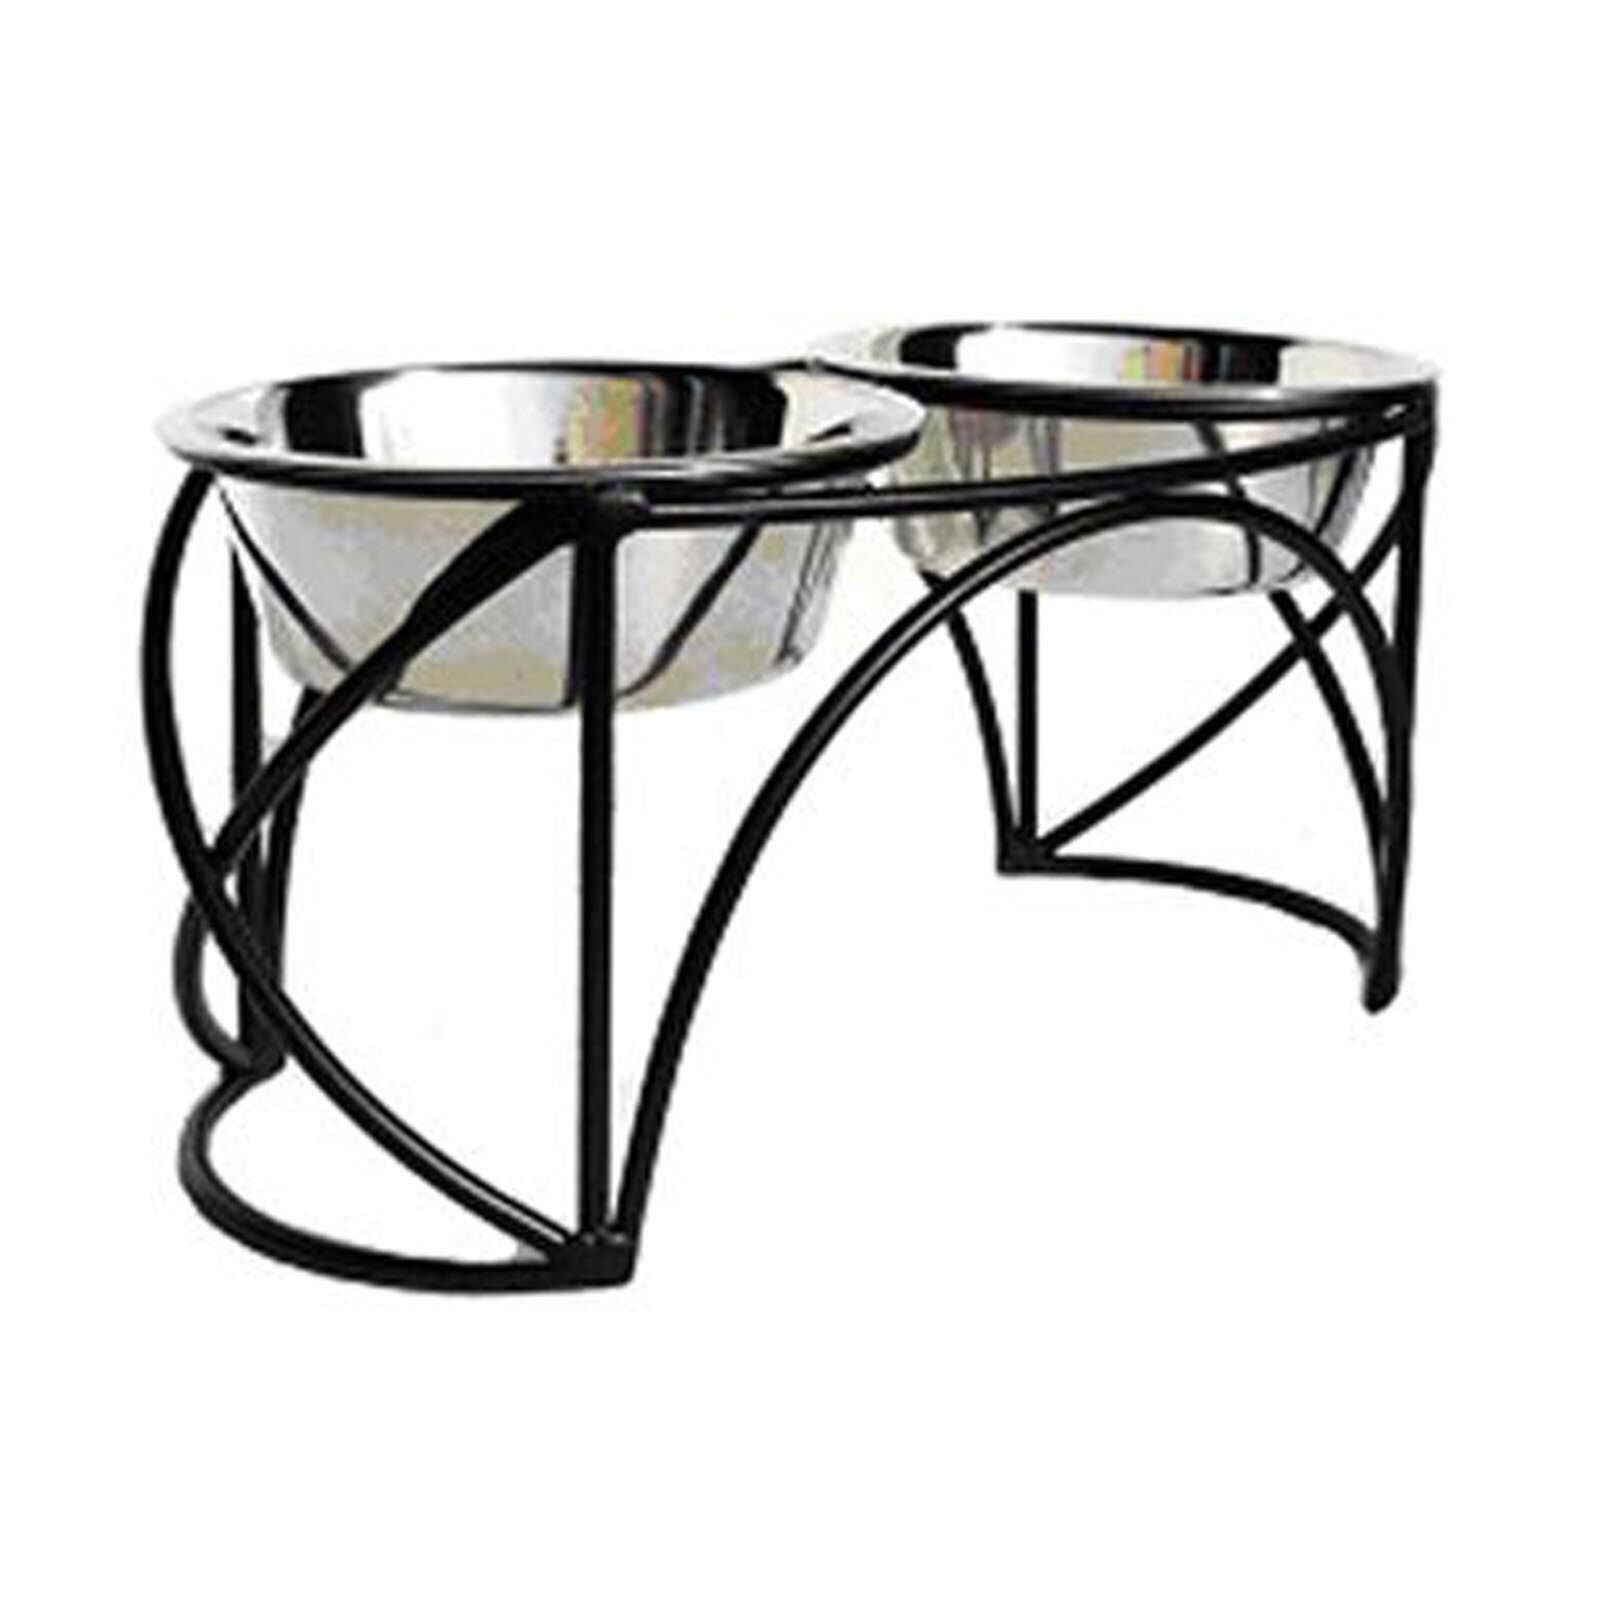 Elevated Dog Food Bowl - Arch Cross Double Double Double Diner 7137bd